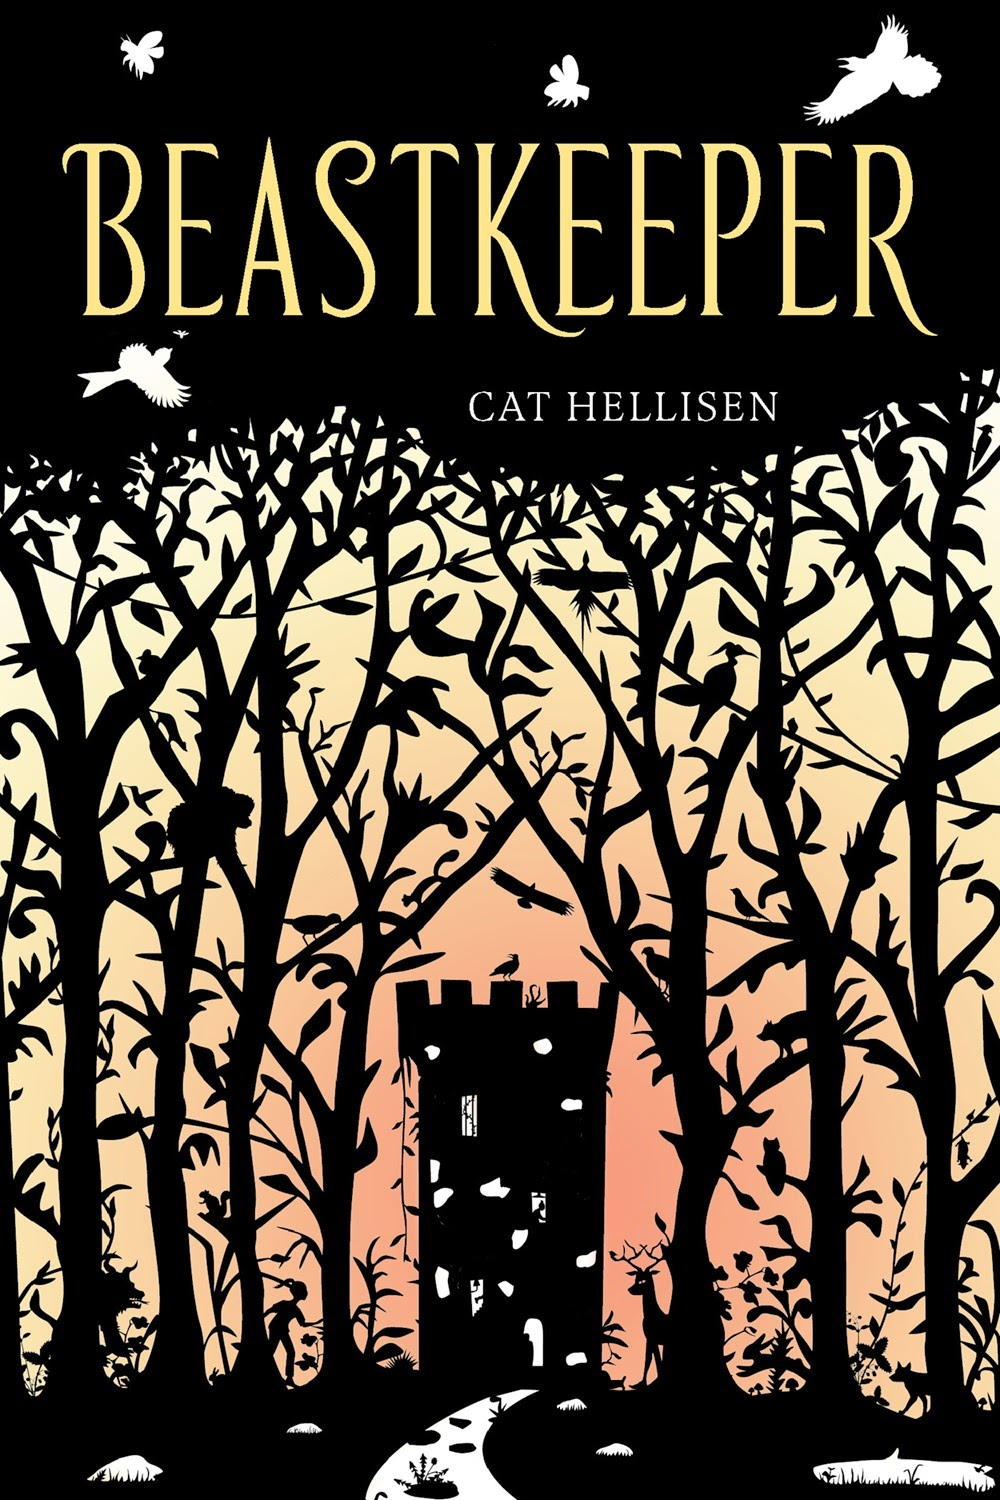 beastkeeper by cat hellisen book cover